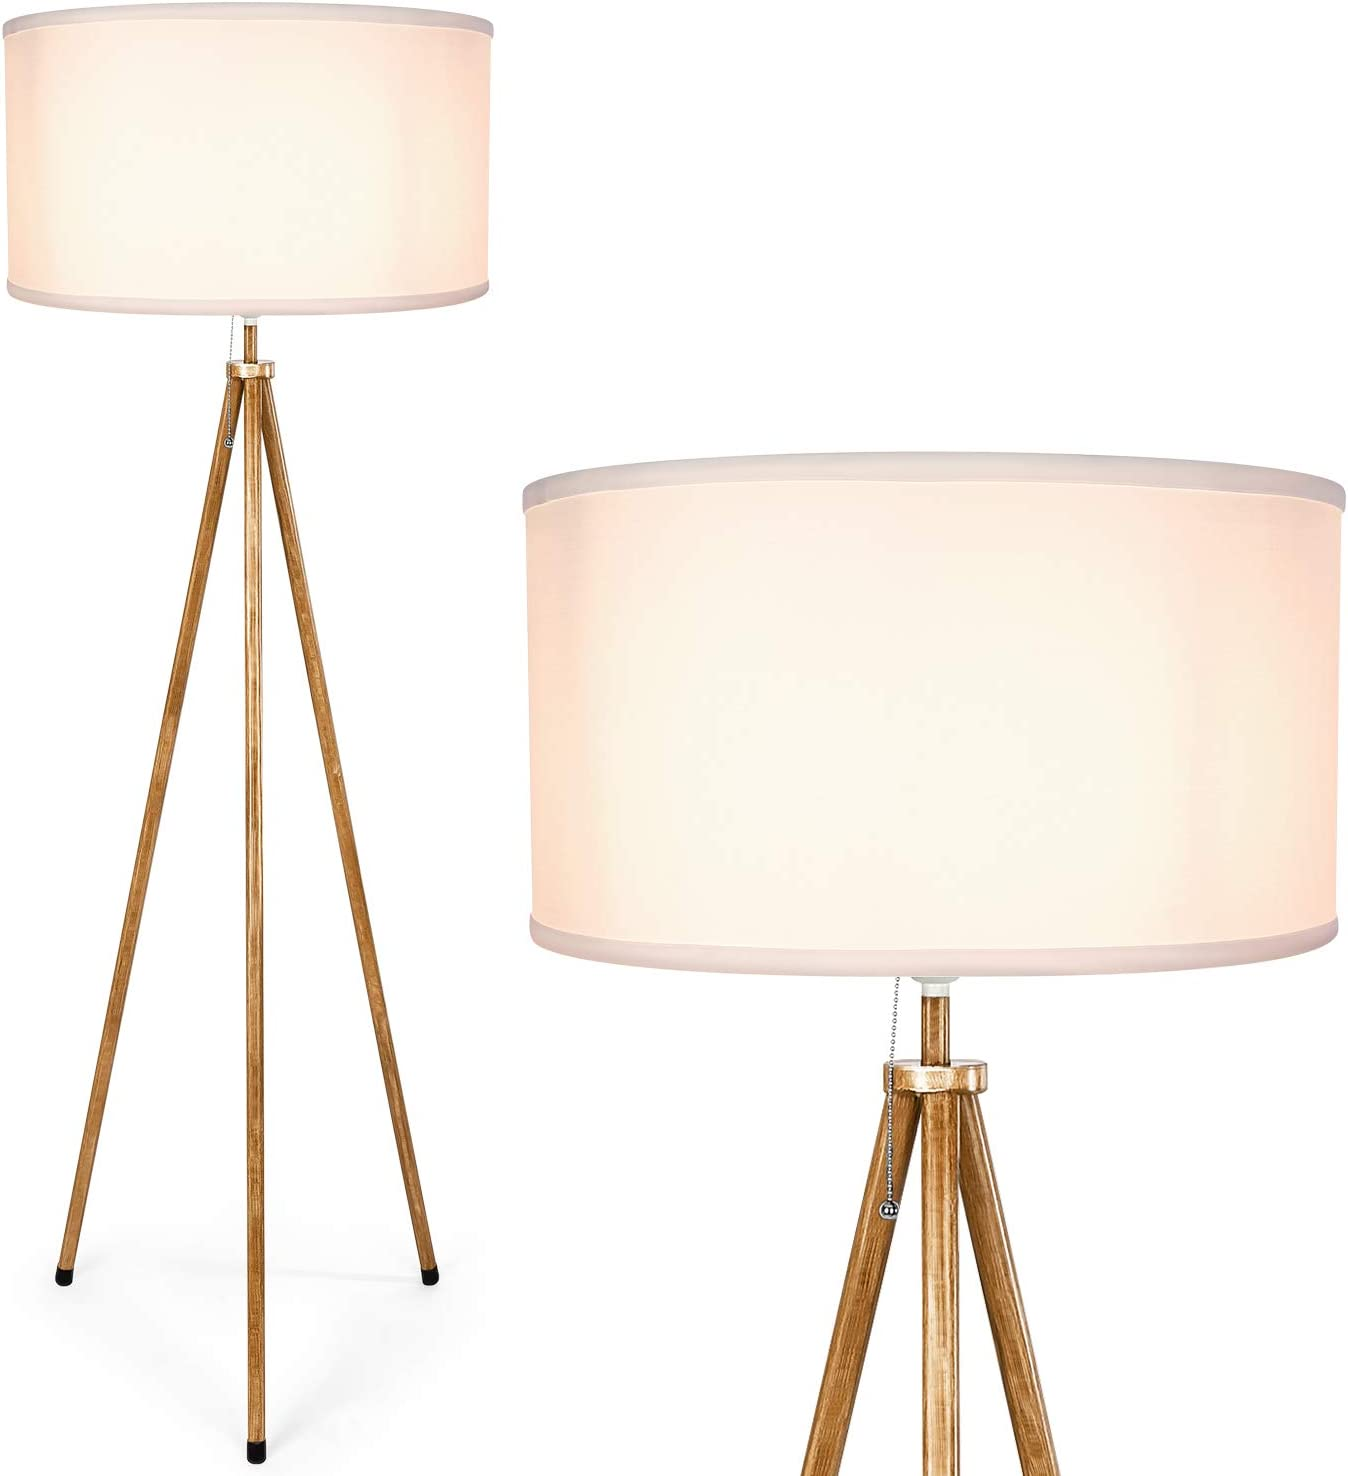 Albrillo Tripod Floor Lamp, Lamp Shade with E26 Bulb Base, Stylish Tall Standing Lamp with Metal Legs for Living Room Bedroom Office Reading